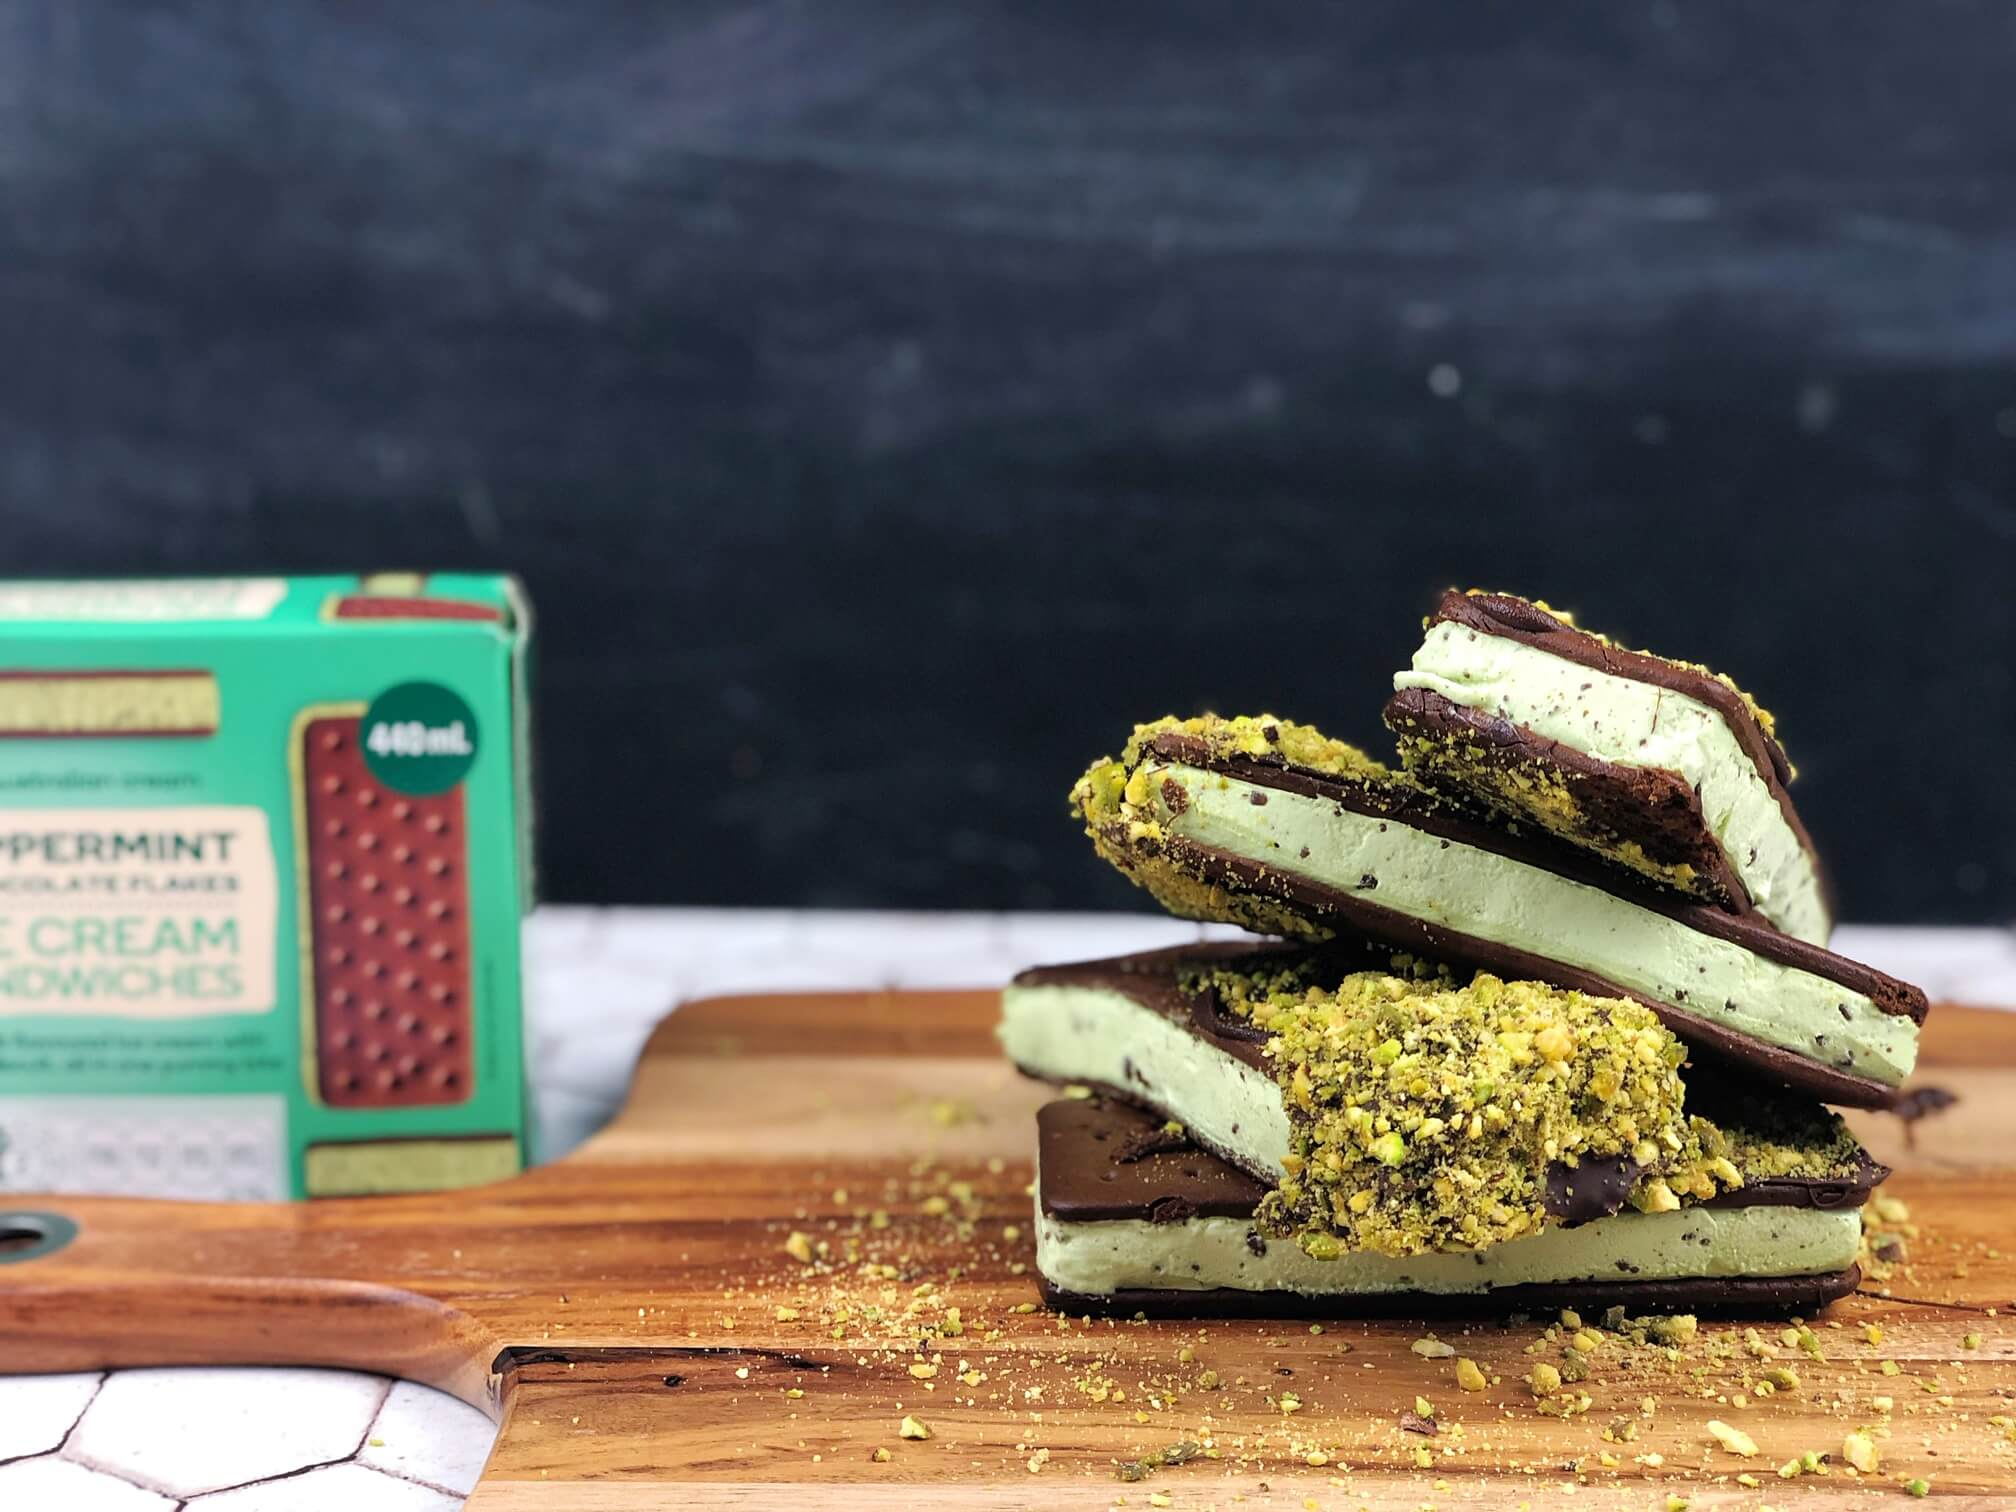 5 ways to serve your Ice cream sandwiches